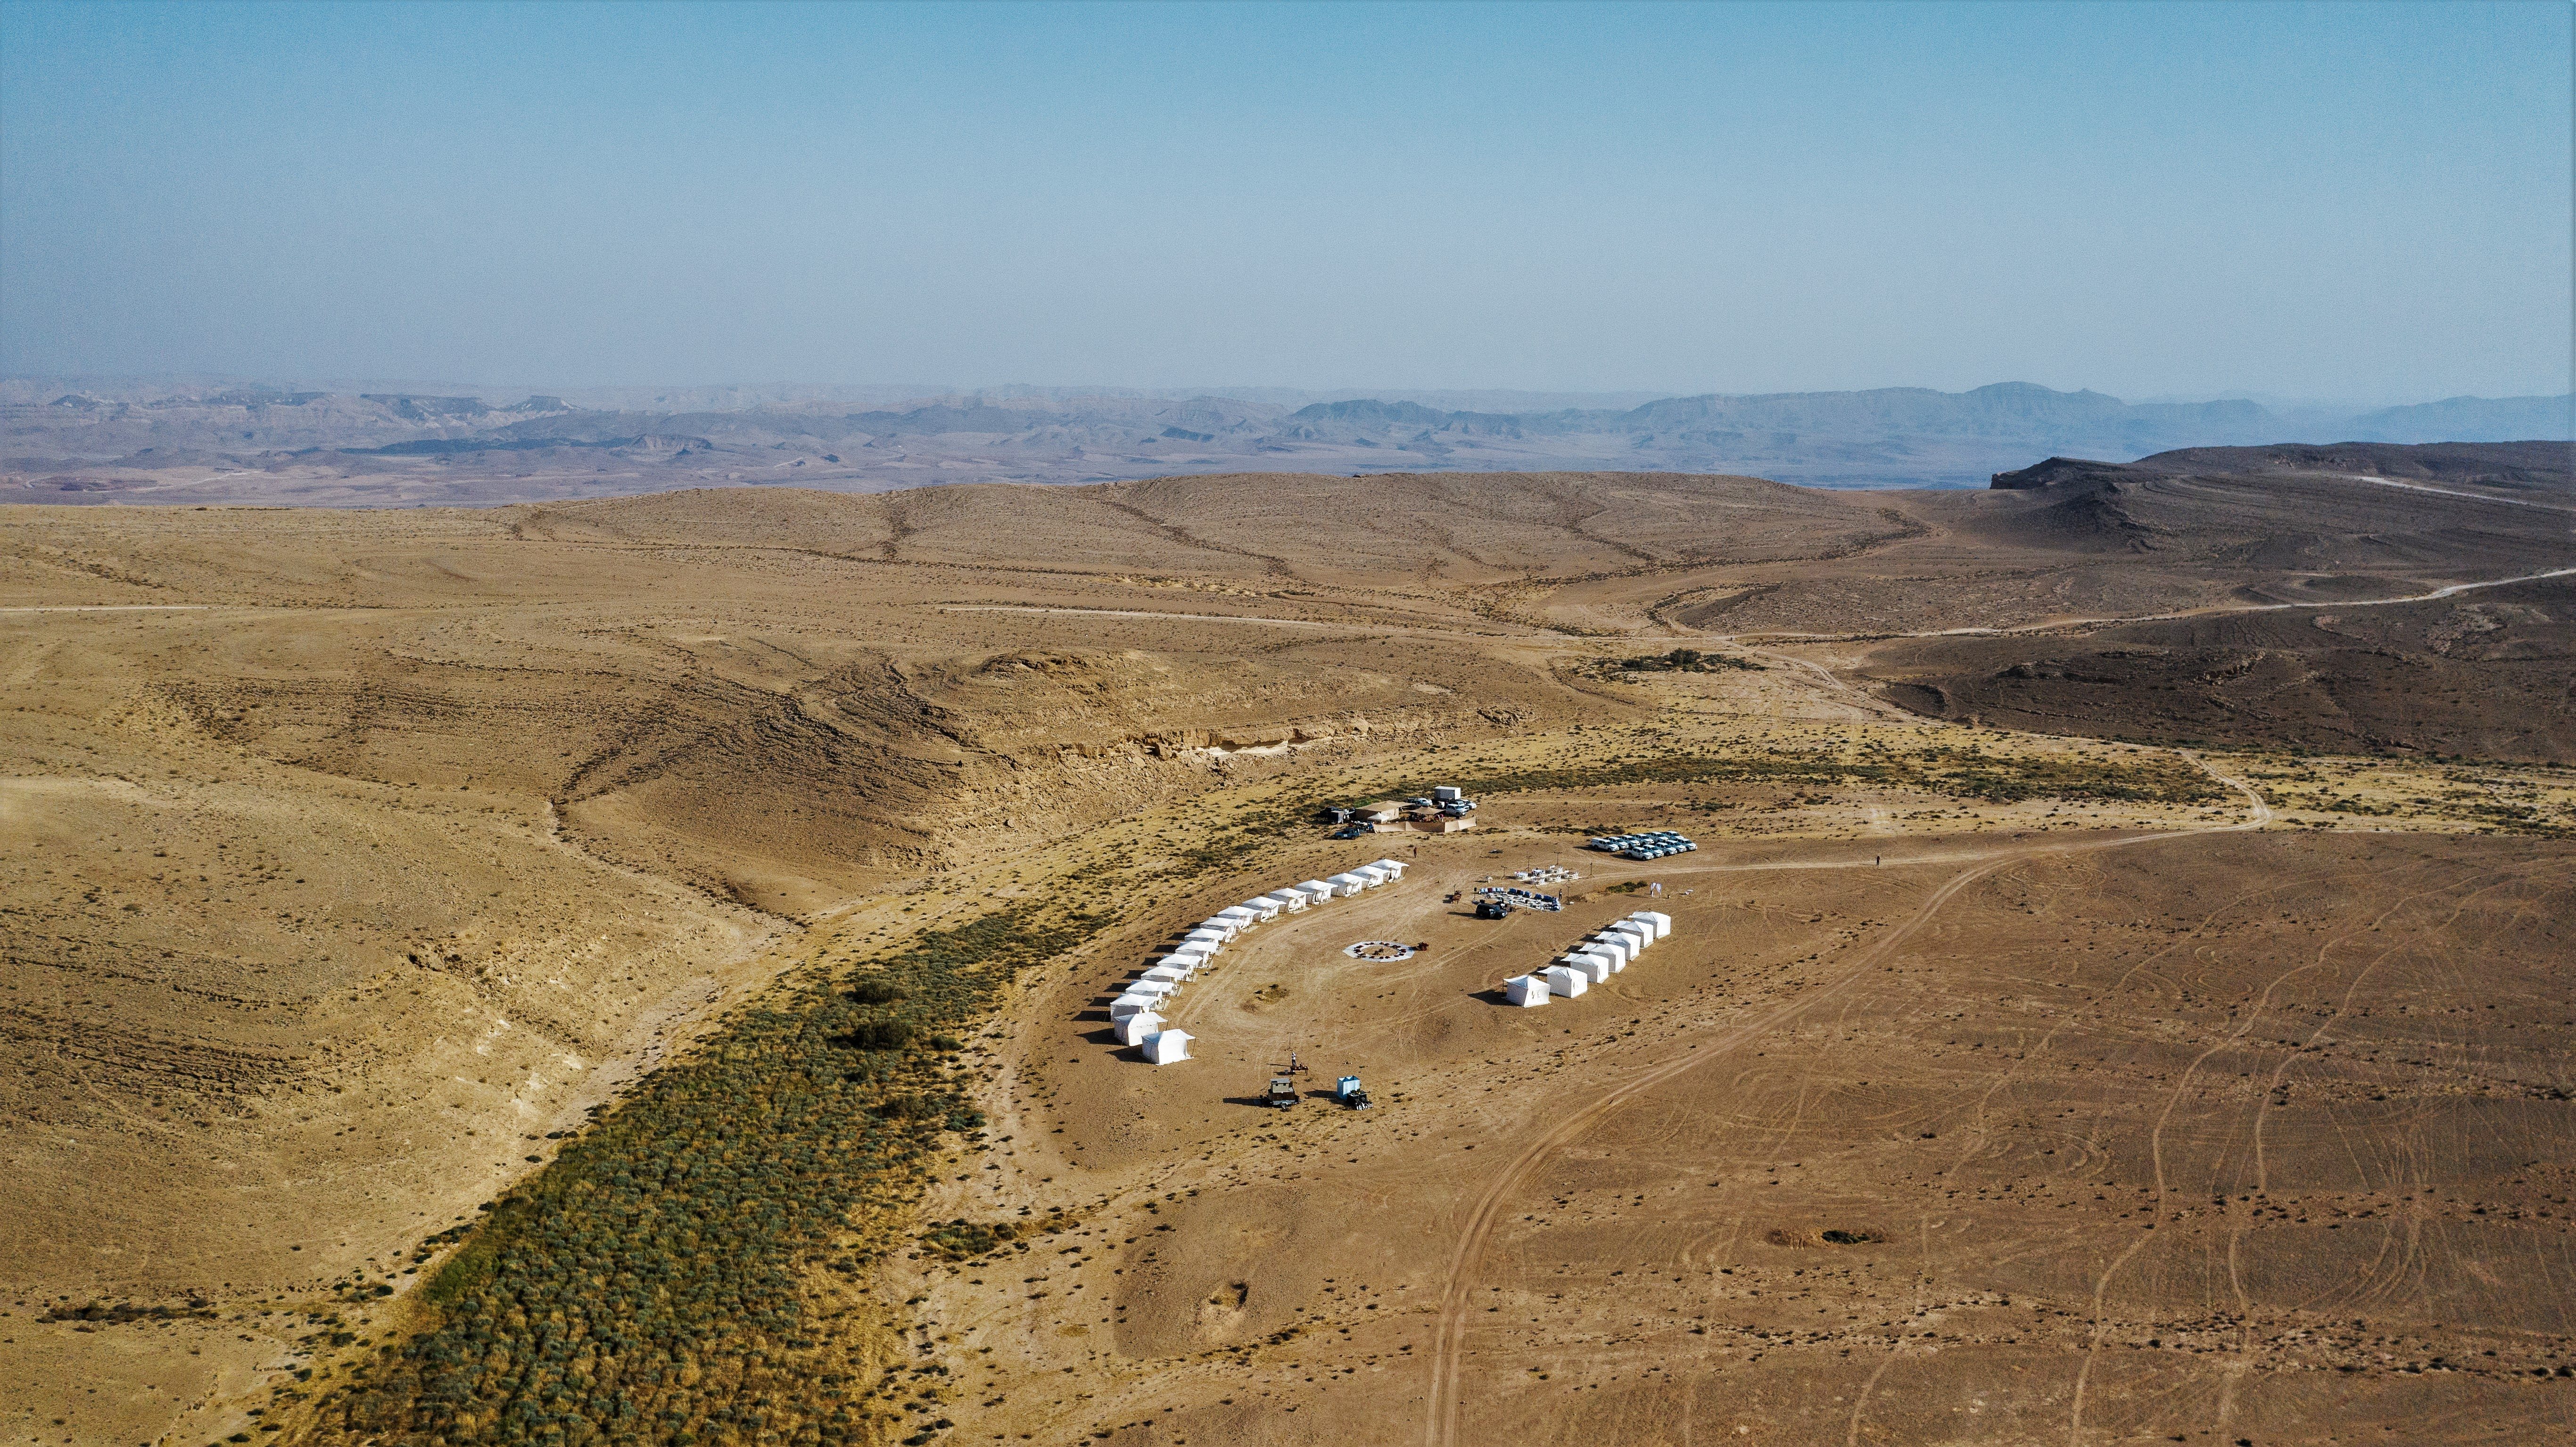 Ramon crater pop up hotel